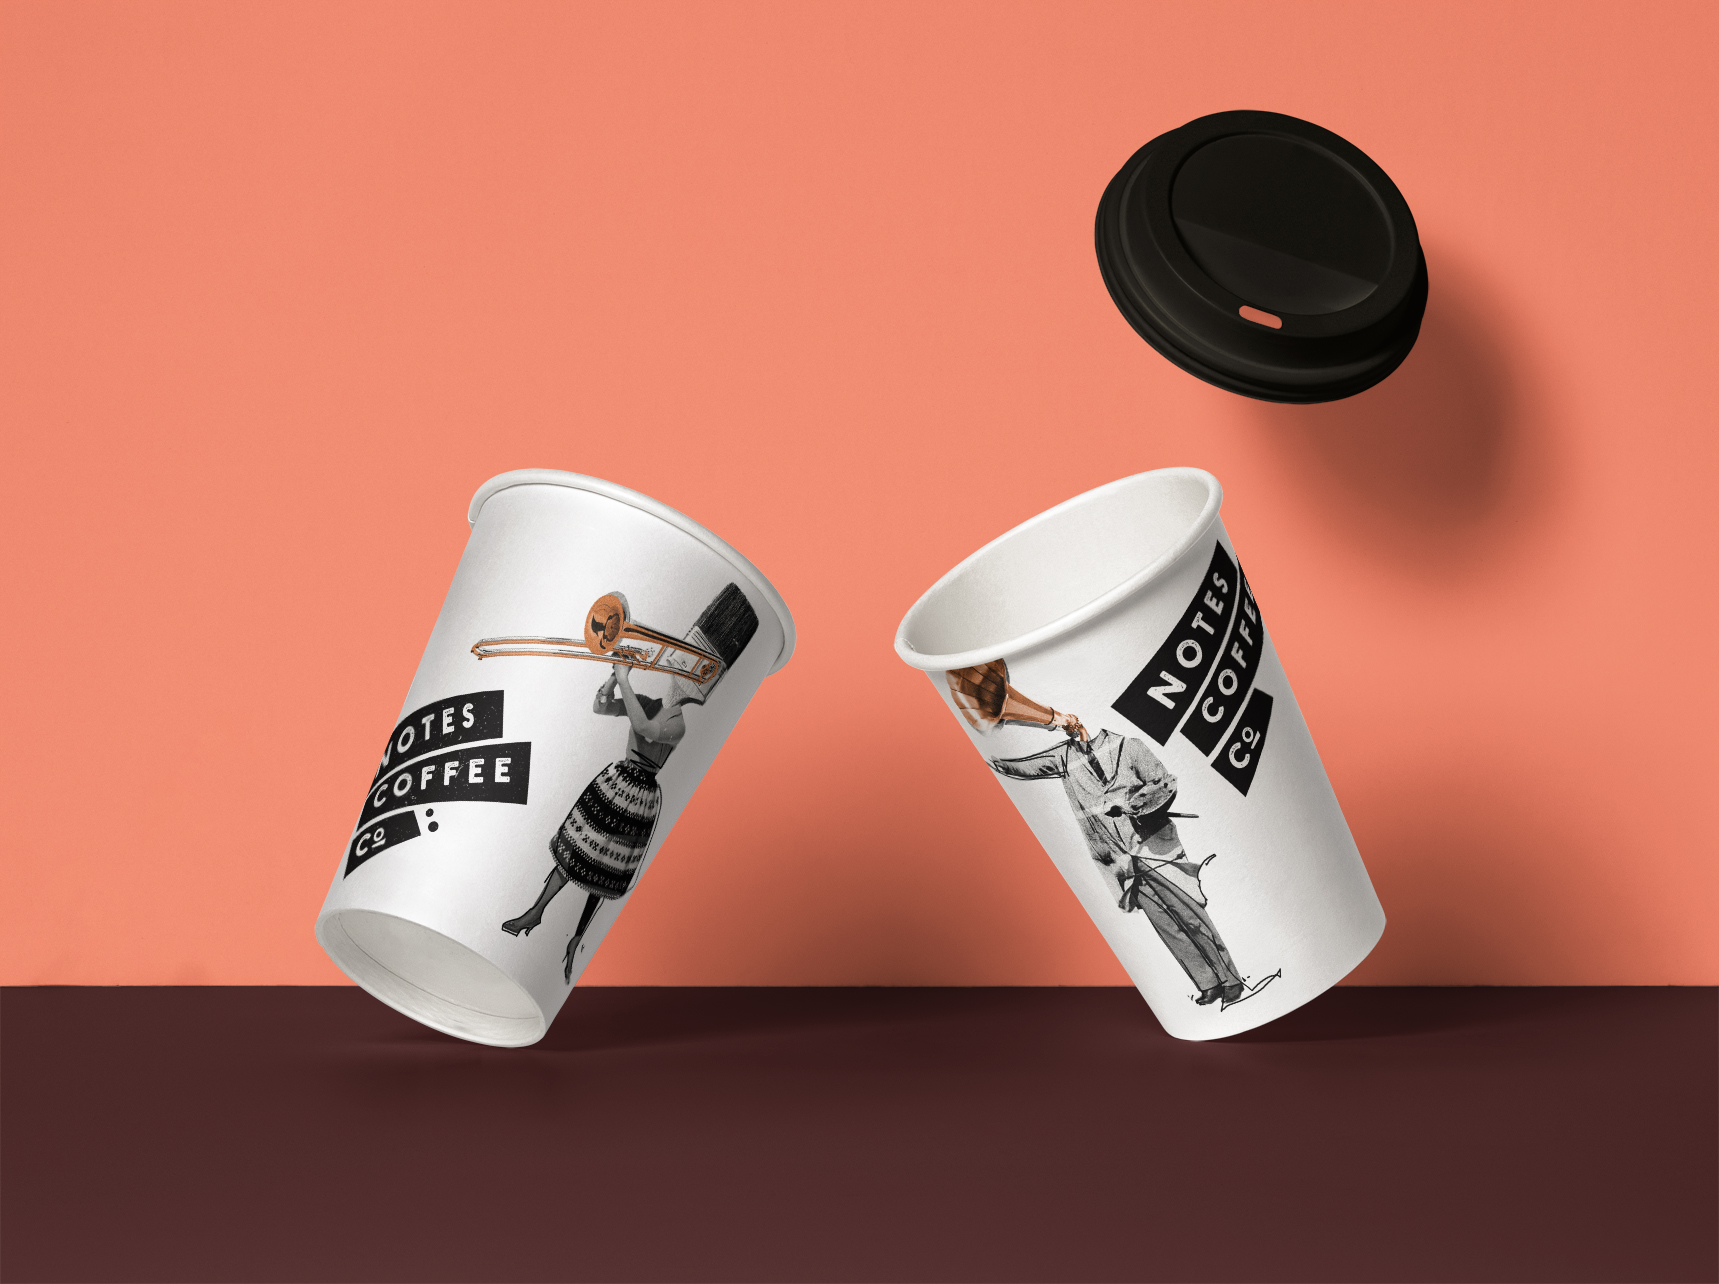 Notes coffee cups.jpg